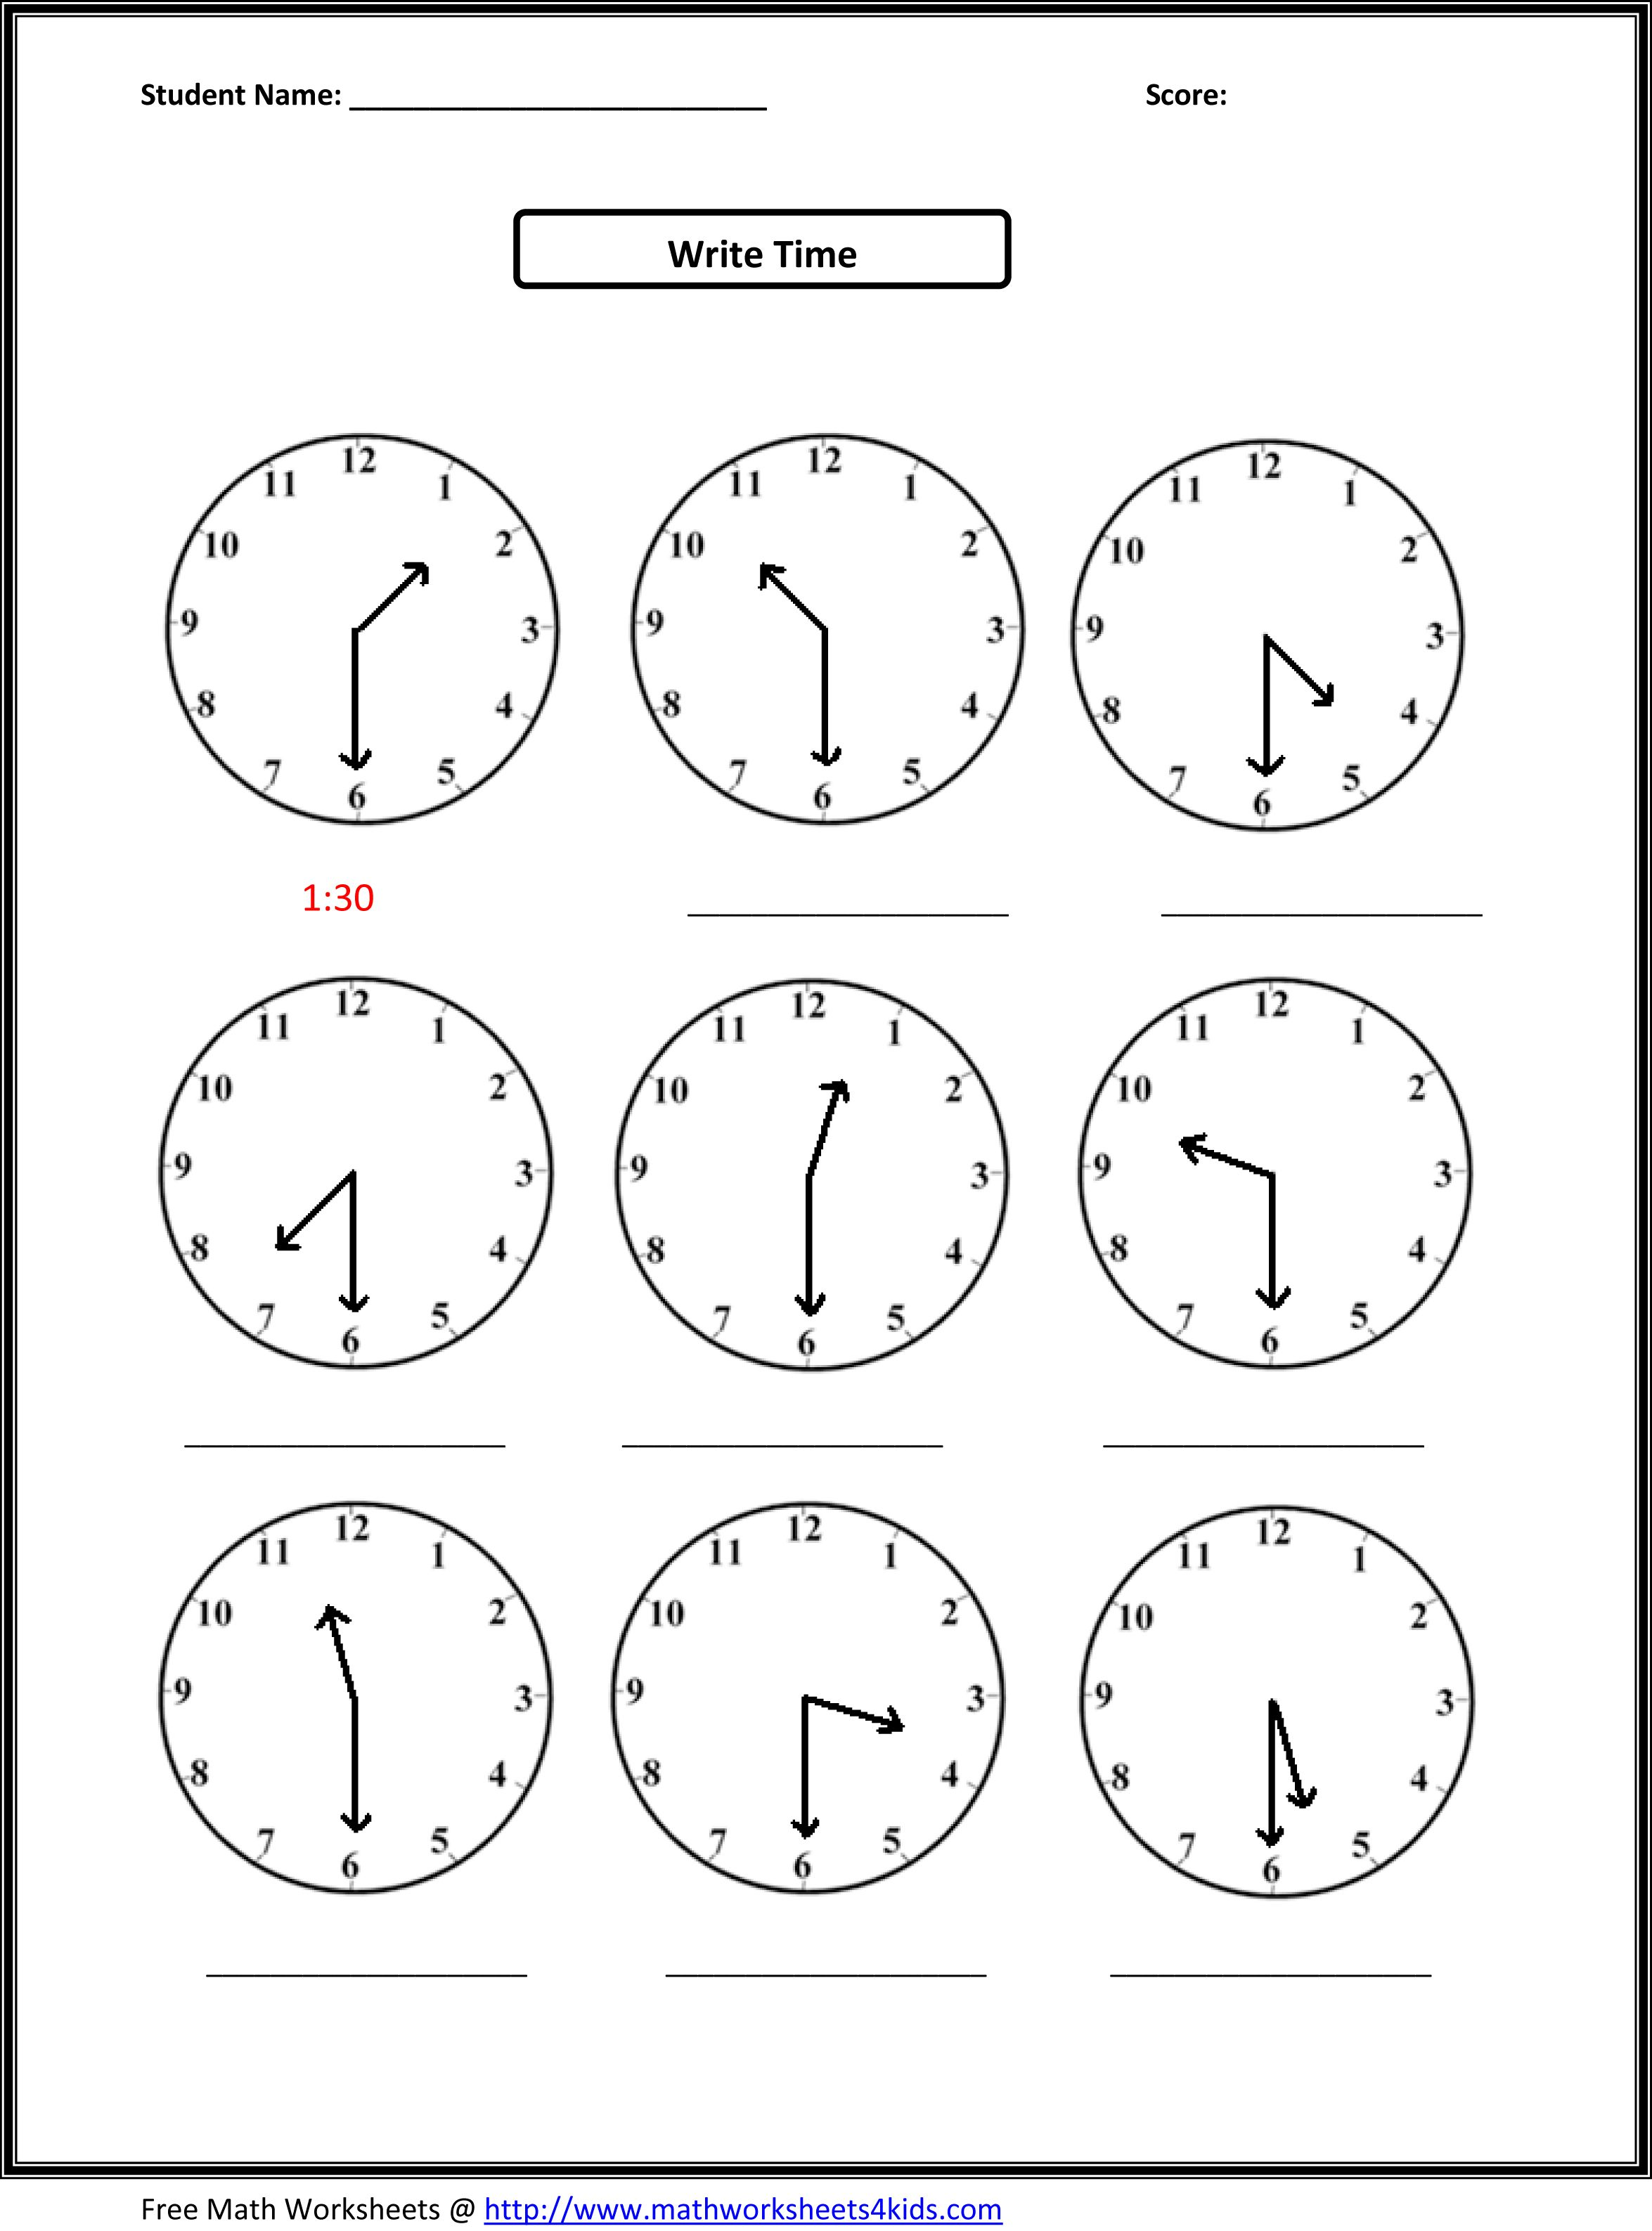 Weirdmailus  Nice Worksheet On Time For Grade   Reocurent With Outstanding Free Printable Telling Time Worksheets Nd Grade  Reocurent With Easy On The Eye Ap Bio Worksheets Also Excel Vba Copy Range To Another Worksheet In Addition Worksheets Exponents And Apostrophe S Worksheets As Well As Verb Worksheets For Grade  Additionally Easter Phonics Worksheets From Reocurentcom With Weirdmailus  Outstanding Worksheet On Time For Grade   Reocurent With Easy On The Eye Free Printable Telling Time Worksheets Nd Grade  Reocurent And Nice Ap Bio Worksheets Also Excel Vba Copy Range To Another Worksheet In Addition Worksheets Exponents From Reocurentcom